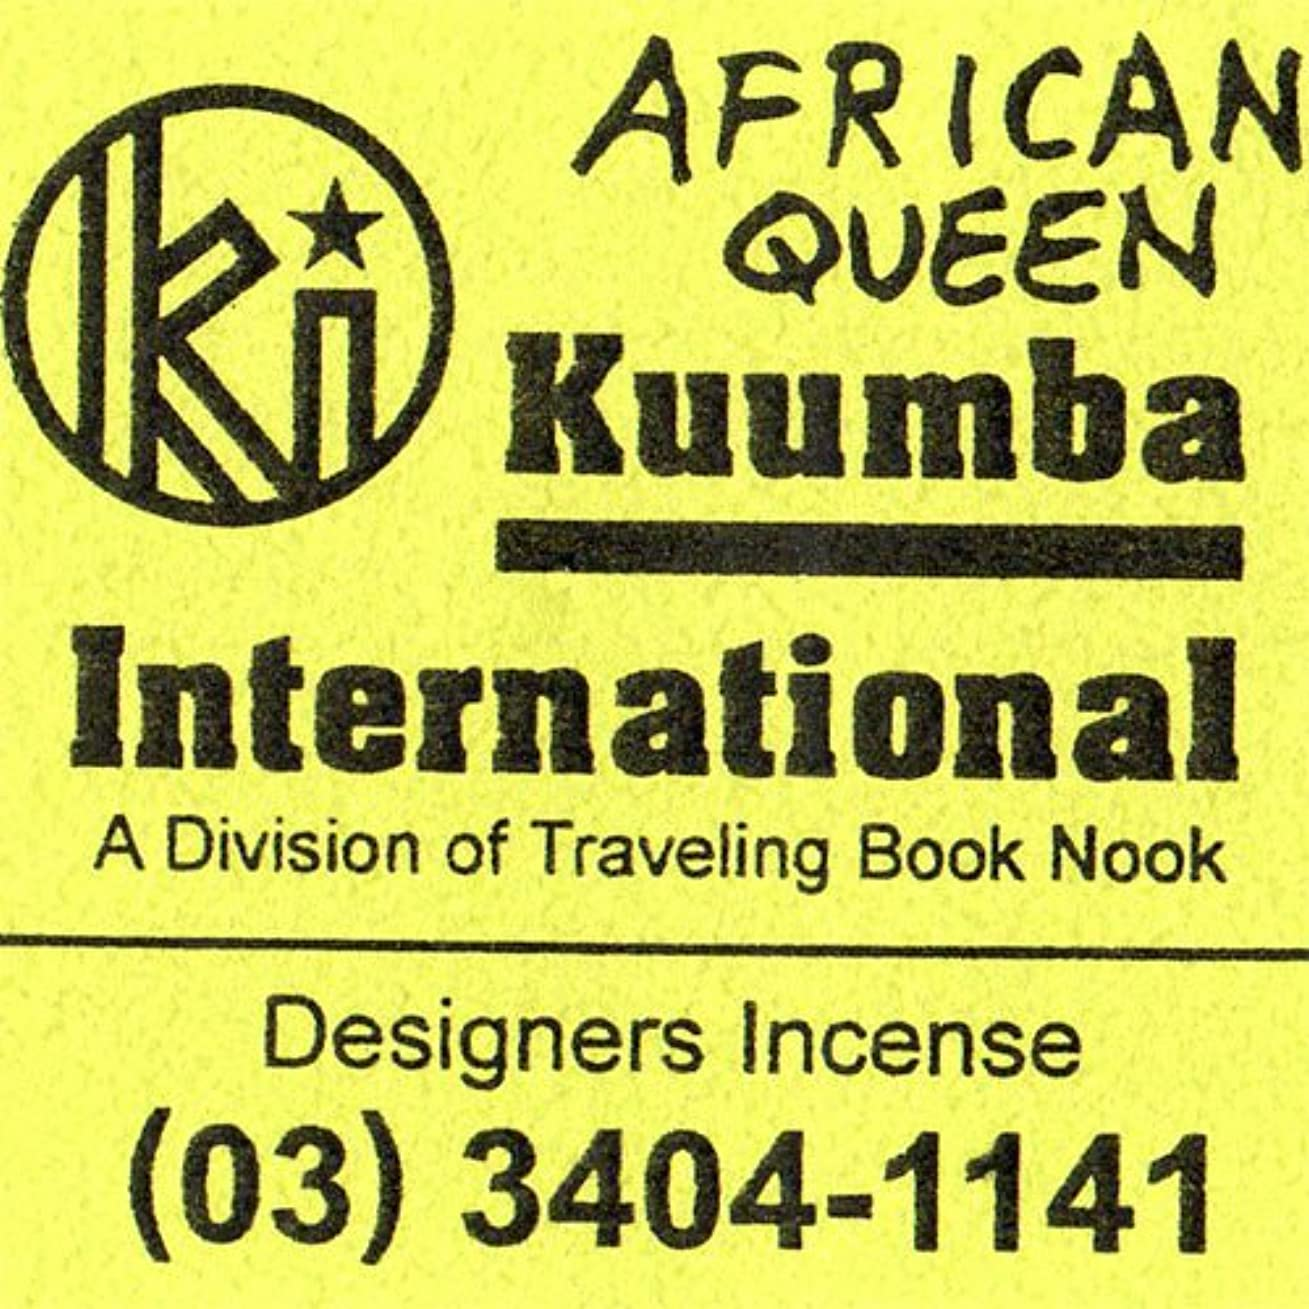 (クンバ) KUUMBA『incense』(AFRICAN QUEEN) (Regular size)